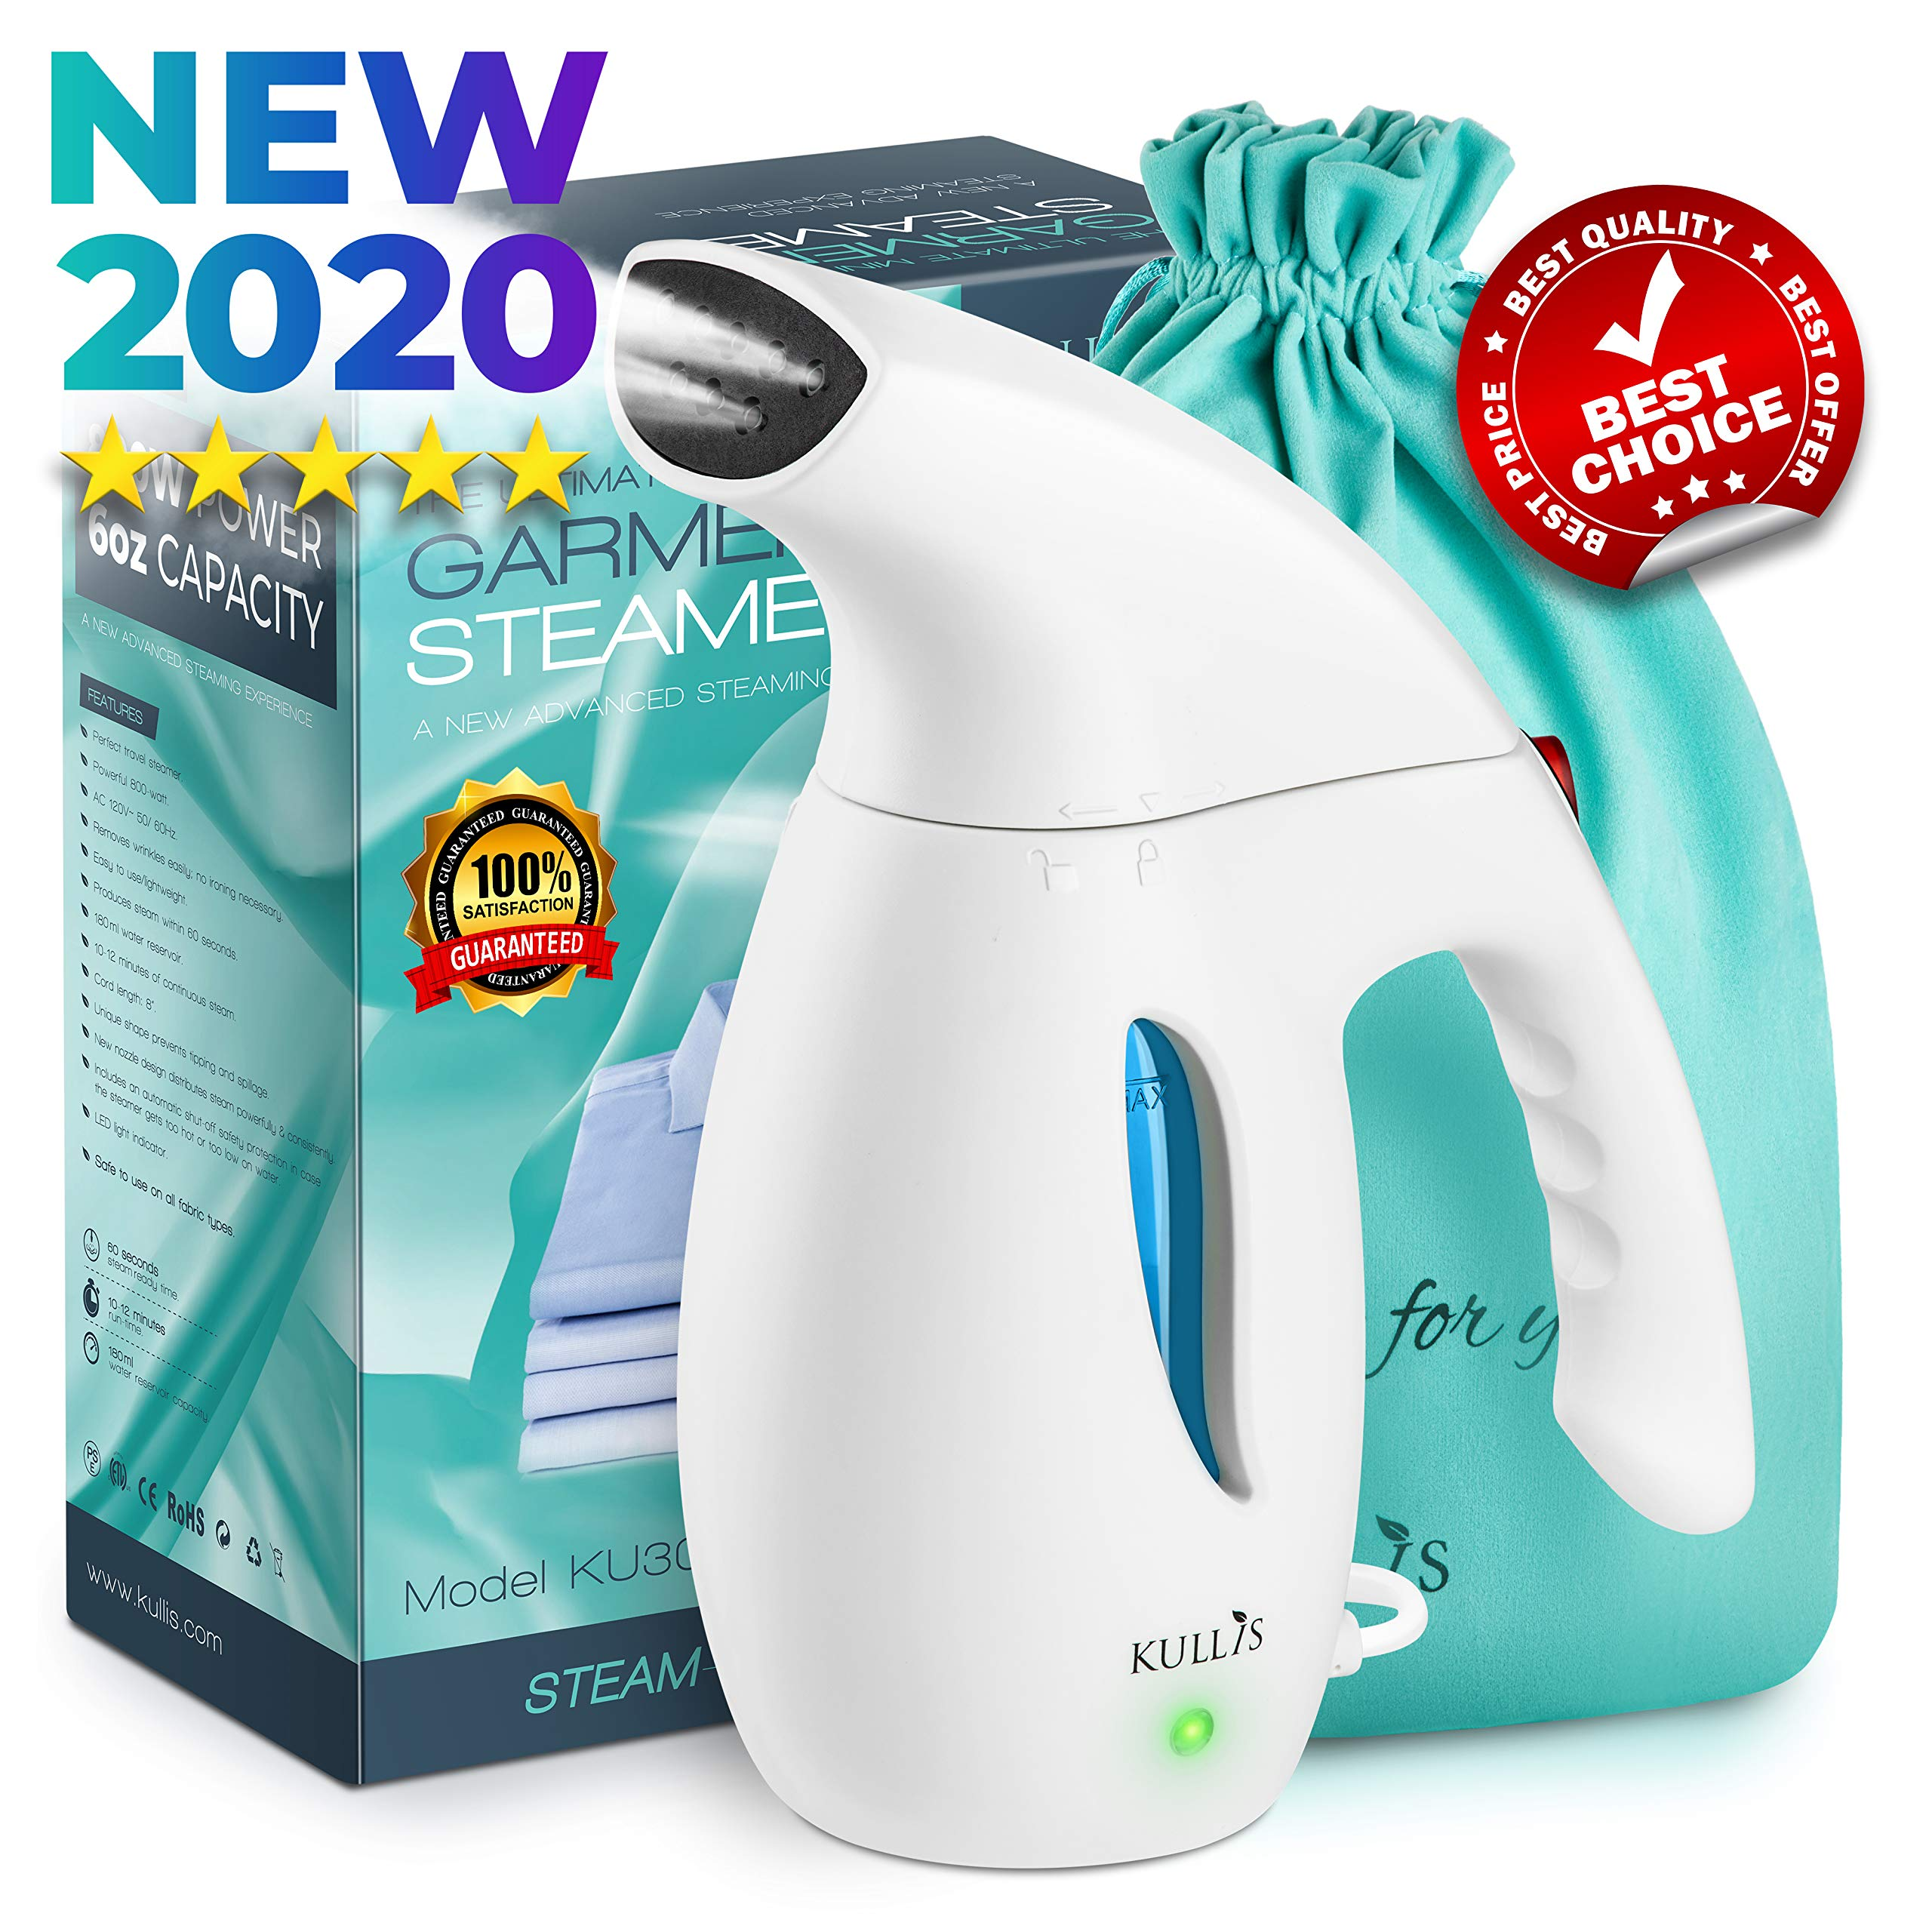 KULLIS Premium [New-Upgraded] - Premium Steamer for Clothes, Clothes Steamer, Portable Handheld Clothing Steamer. 8-in-1 Hand Travel Fabric Steamer, Home Wrinkle Remover, Garment Iron Steamer by KULLIS